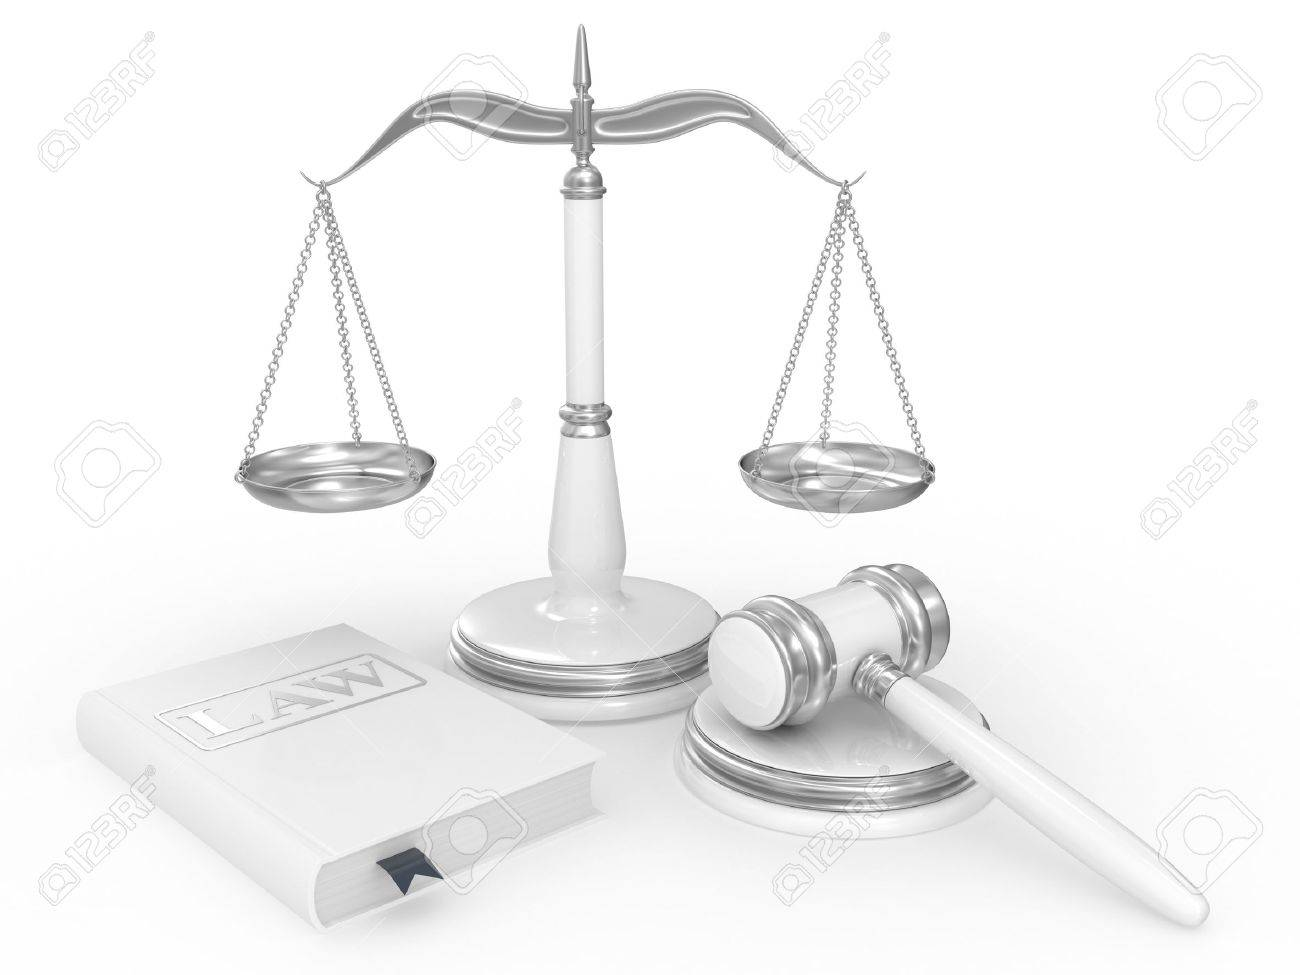 Lawyer Wallpaper Backgrounds